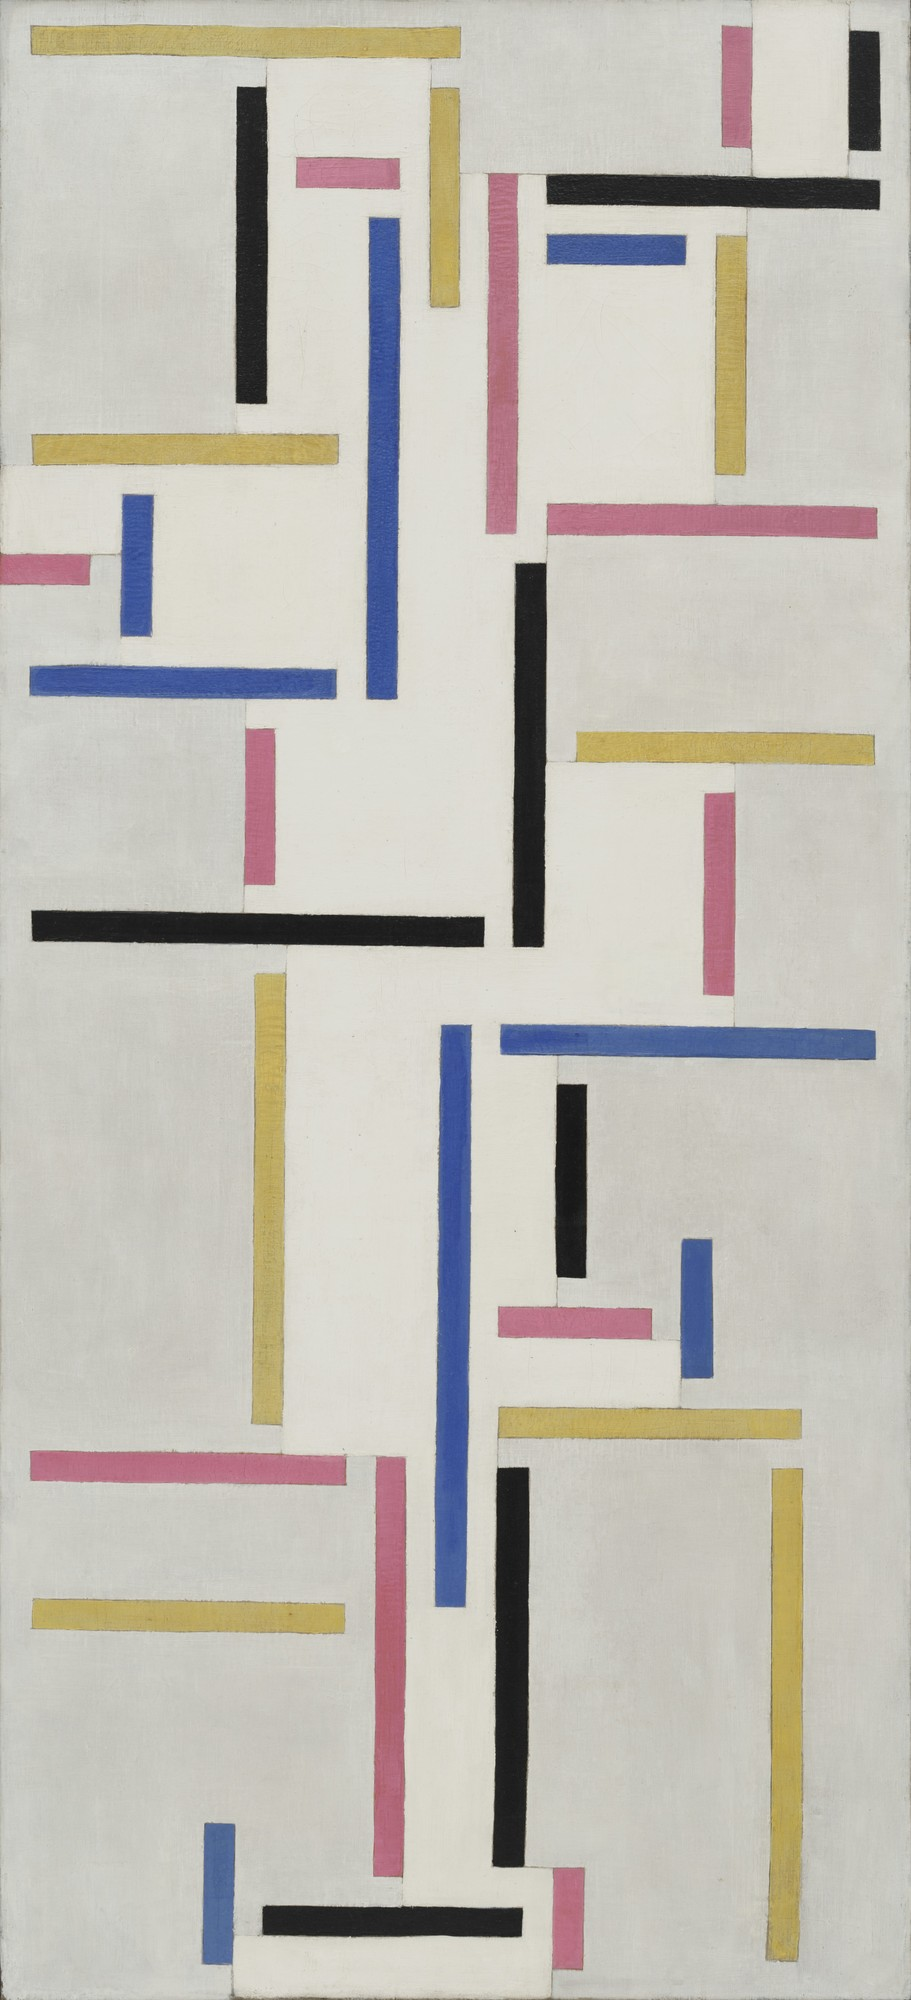 Love modern art? In Postcard #6, we bring you a closer look of five abstract artworks at MoMA!